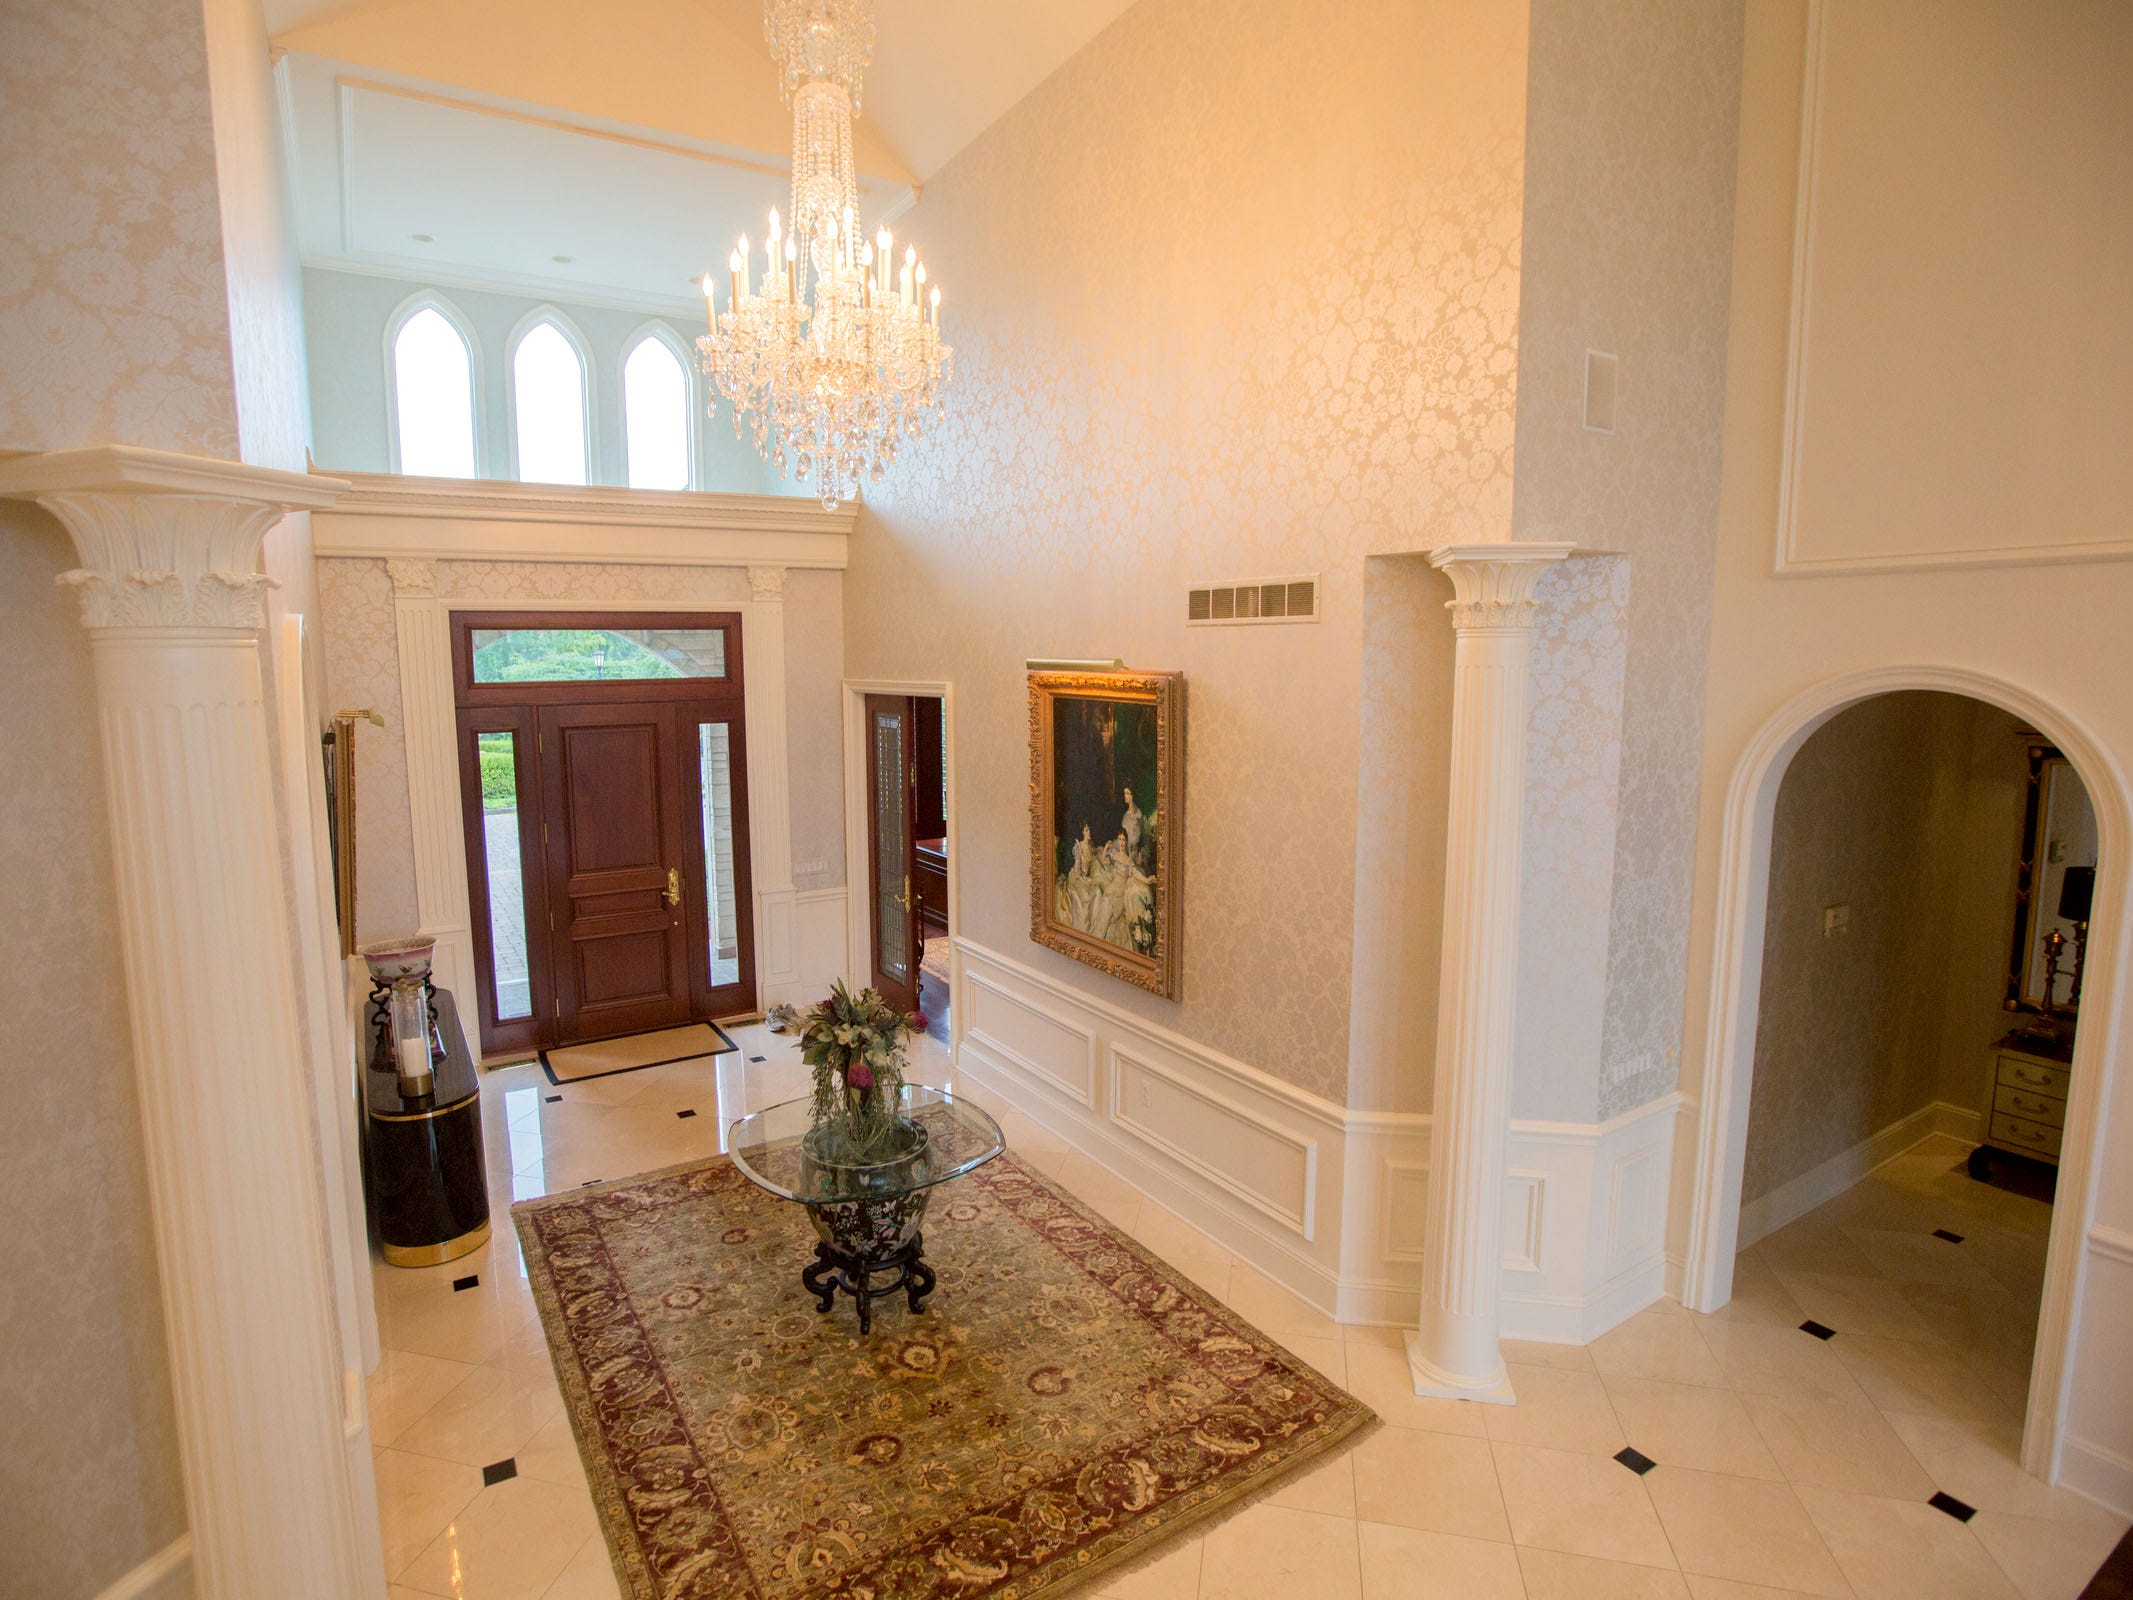 The tall entry hall continues the theme of white pillars and white marble.